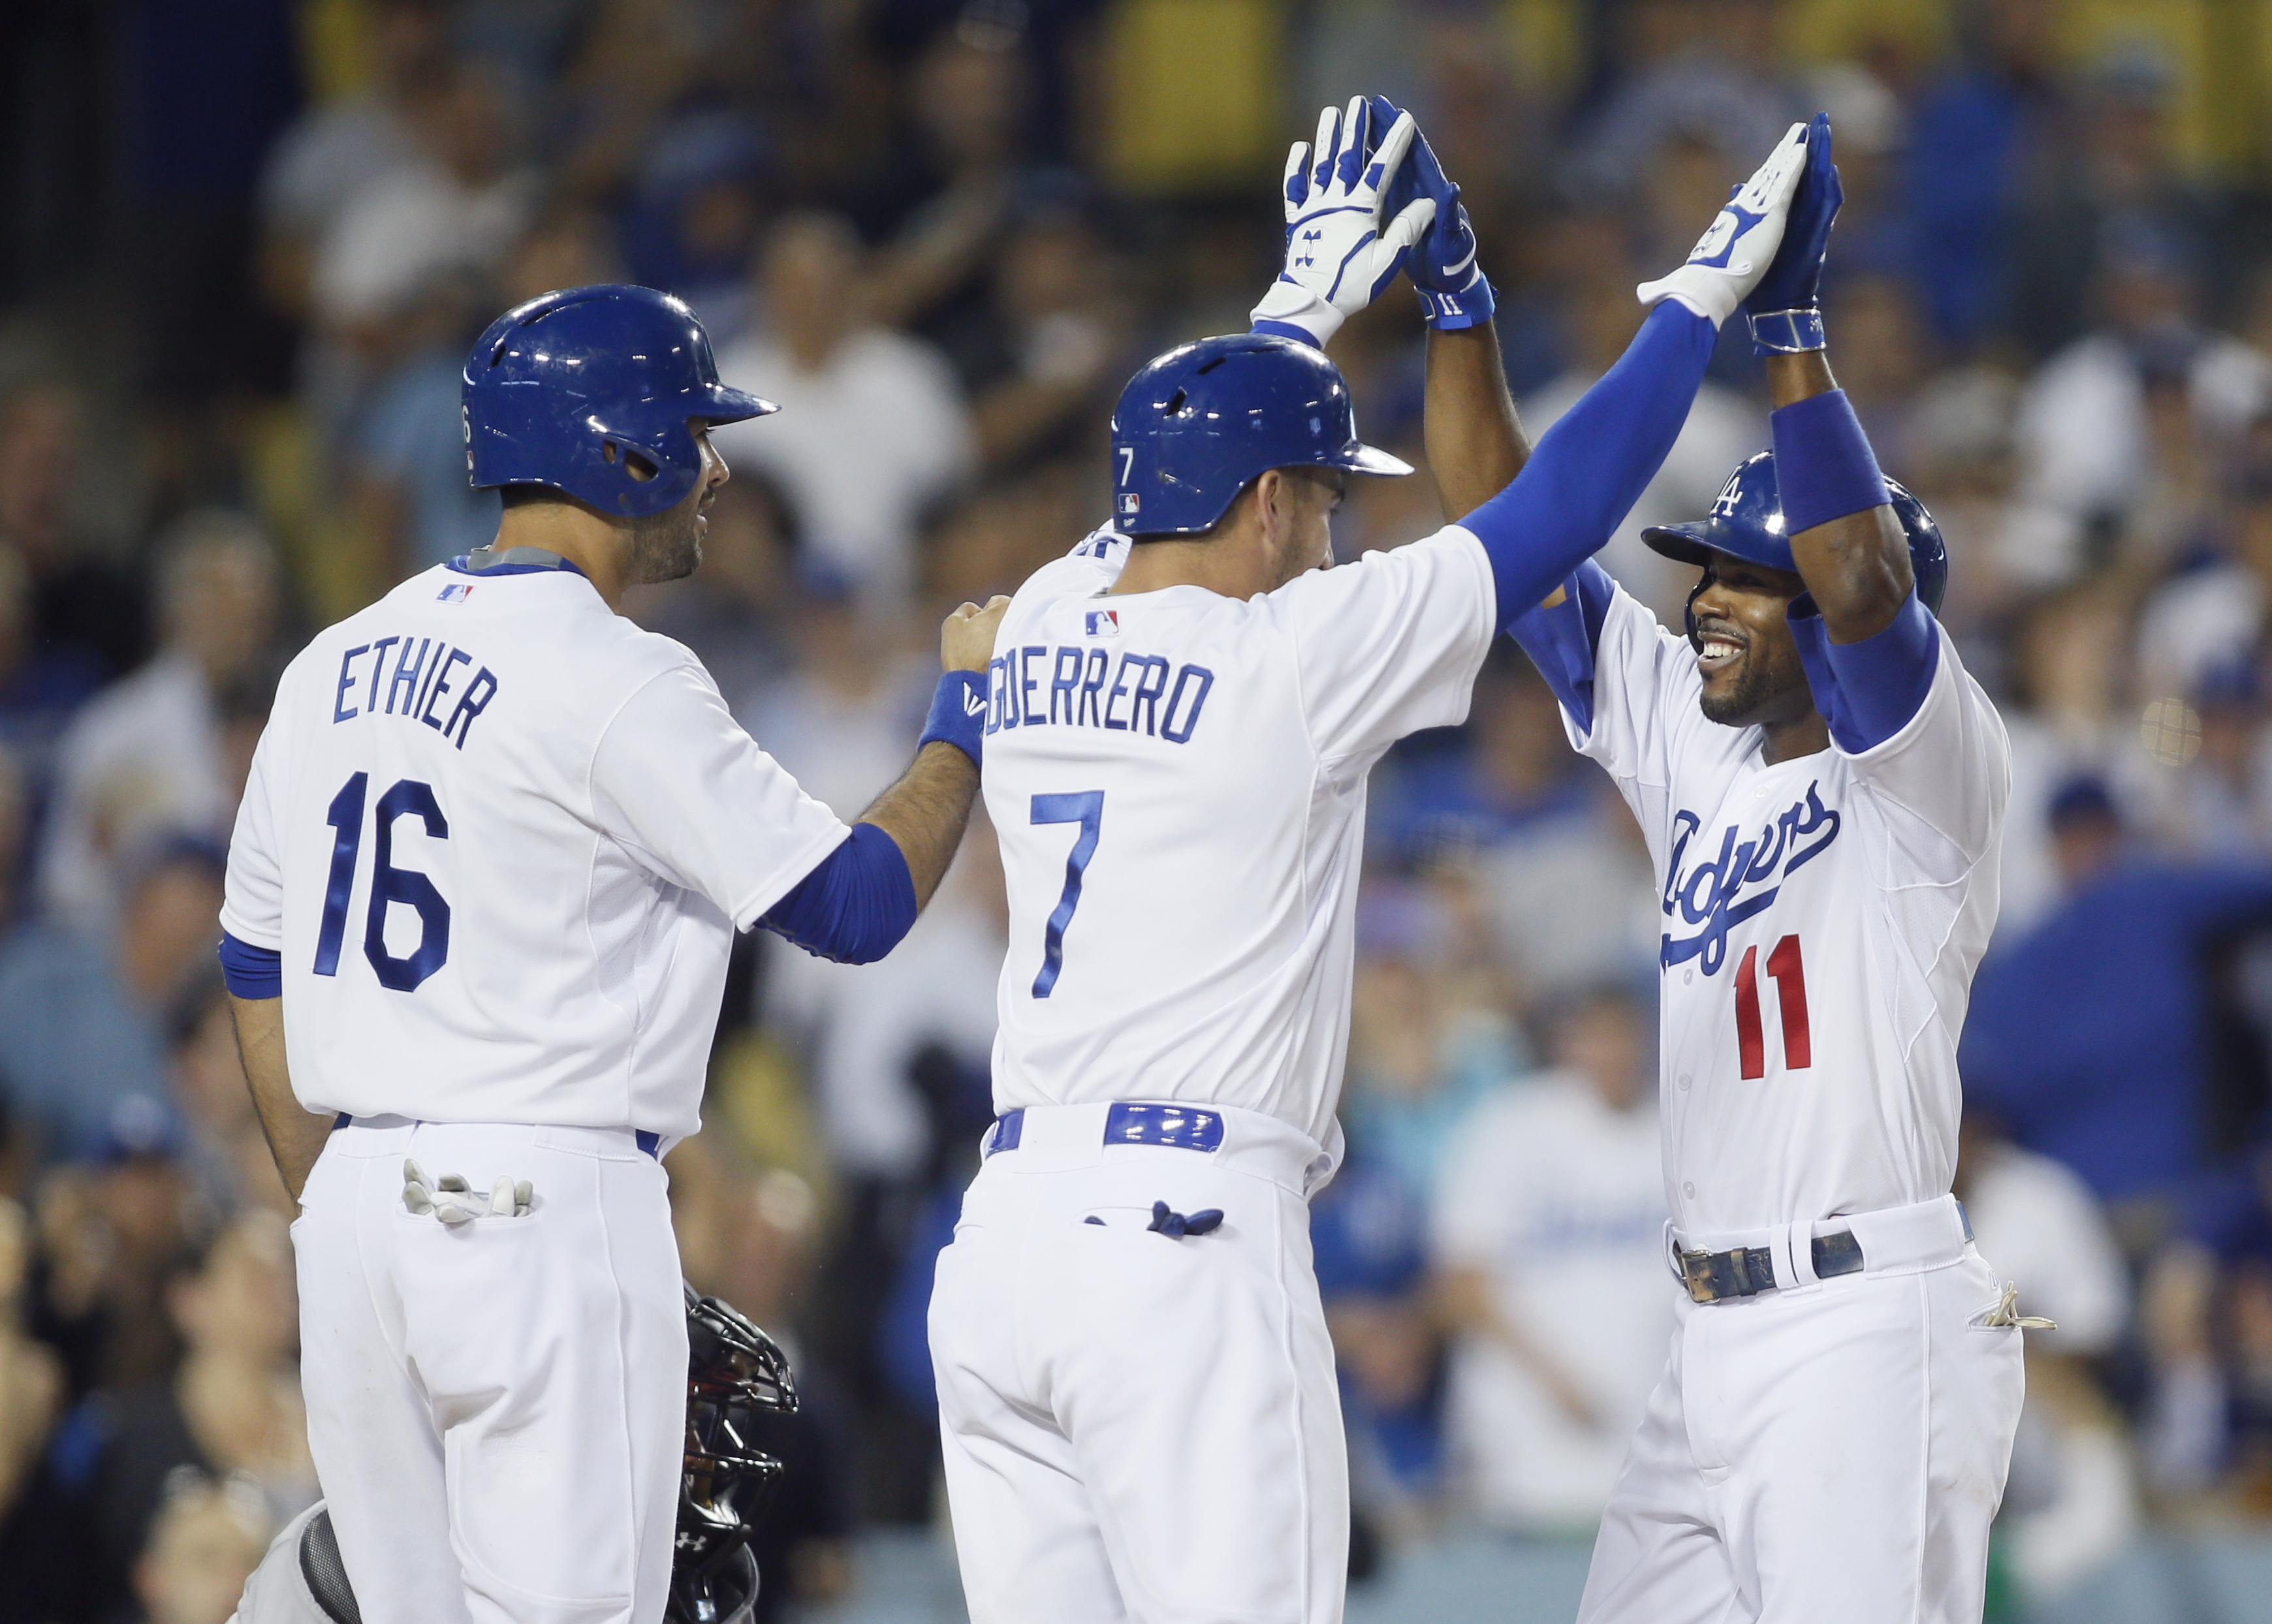 Los Angeles Dodgers shortstop Jimmy Rollins, right, celebrates his three-run home run after driving in Alex Guerrero, center, and Andre Ethier, left, during the fourth inning of a baseball game against the Arizona Diamondbacks, Monday, June 8, 2015, in Lo